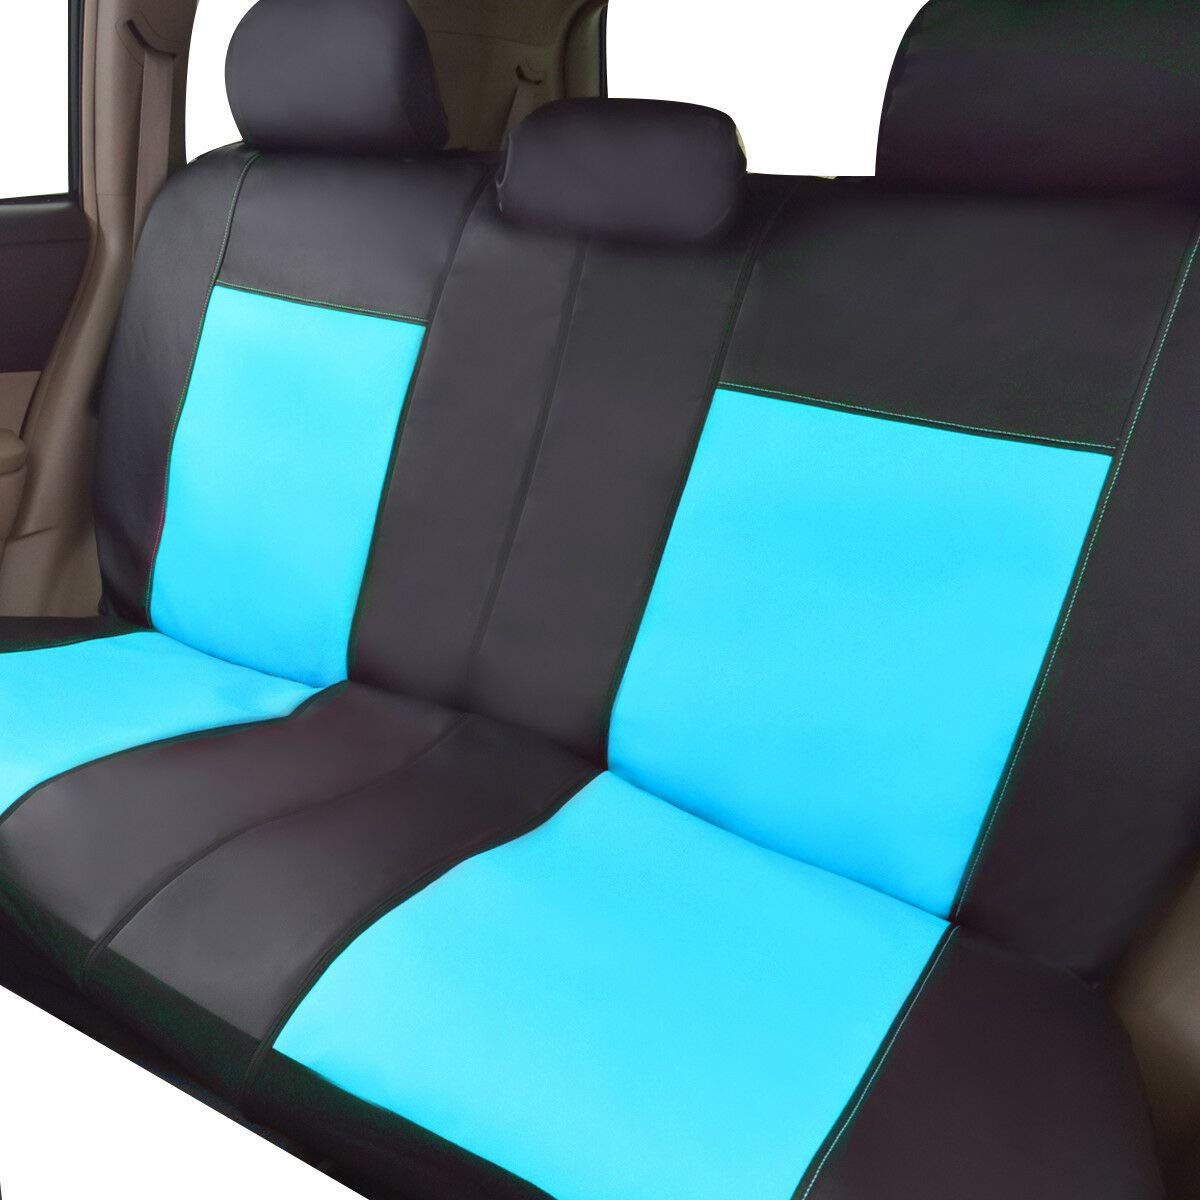 Flying Banner 11 PCS Car Seat Covers Full Set PVC Leather Water Blue and Black 004-Style Universal fit Most Car,Truck,SUV and Van Waterproof Composite Sponge Inside Airbag Compatible